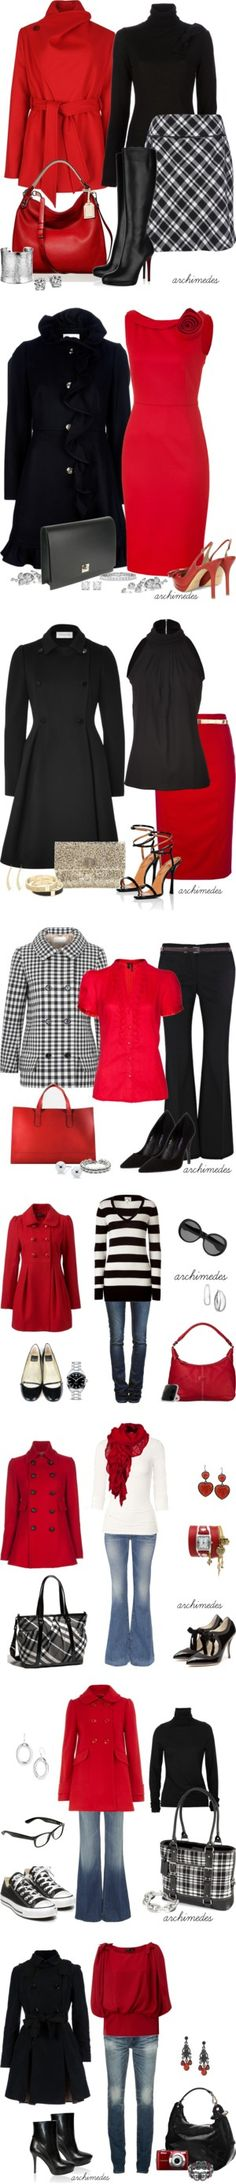 Red and Black. Love!